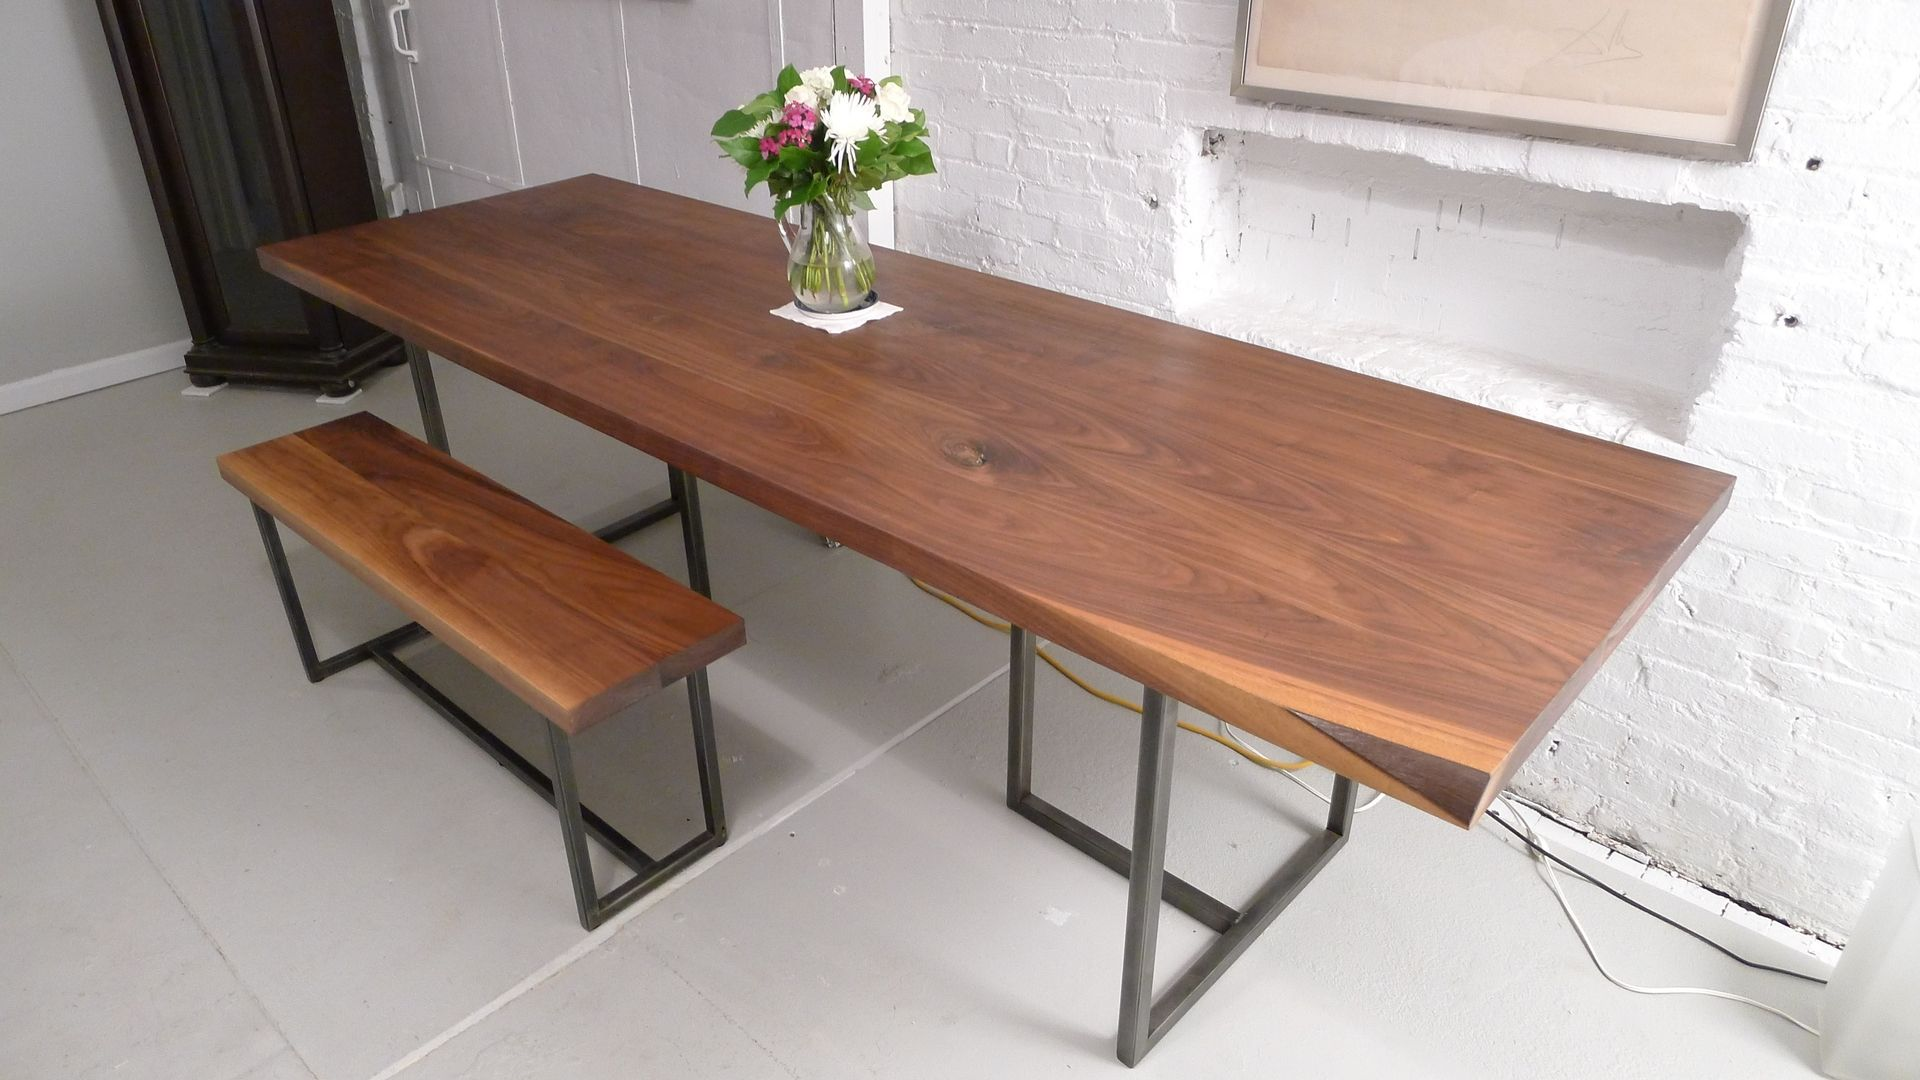 Handmade Walnut Dining Table by Harvest Home Steel | CustomMade.com